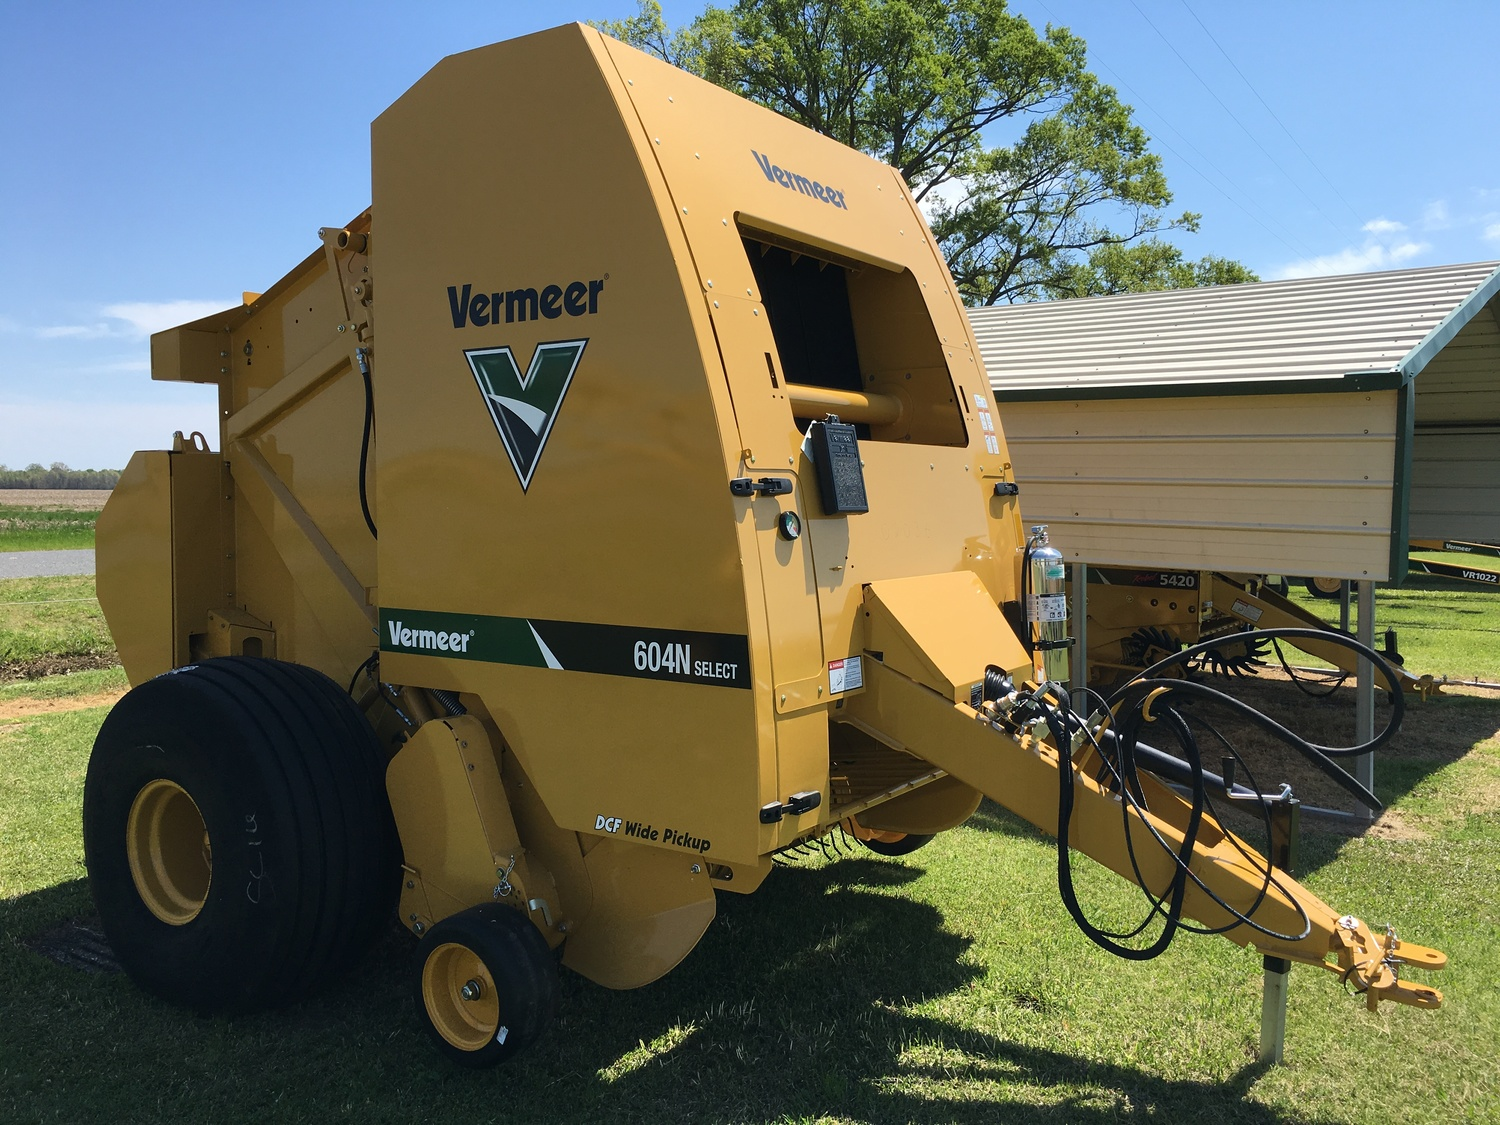 New & Used Equipment — Vermeer Equipment of Goodwill, Inc